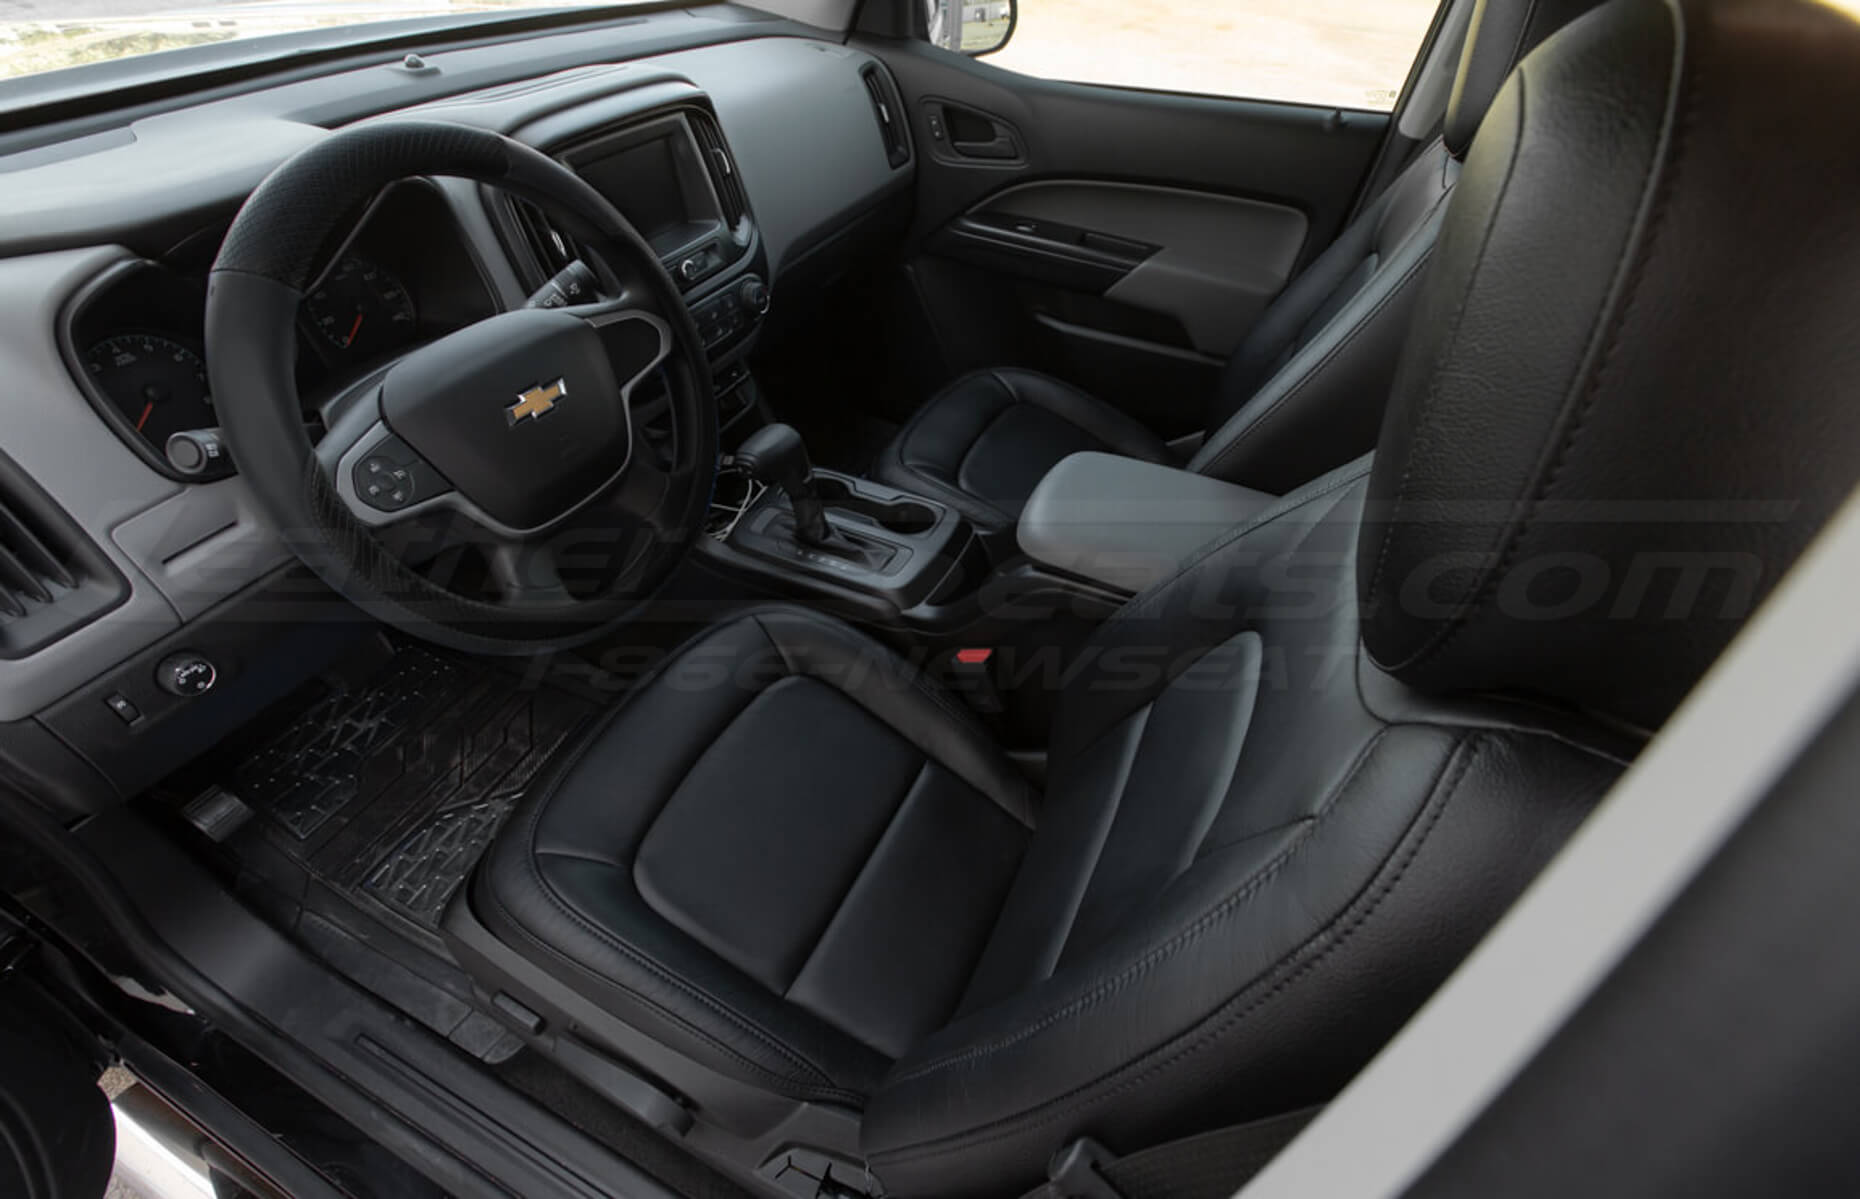 Chevrolet Colorado Leather Seats - Front driver seat